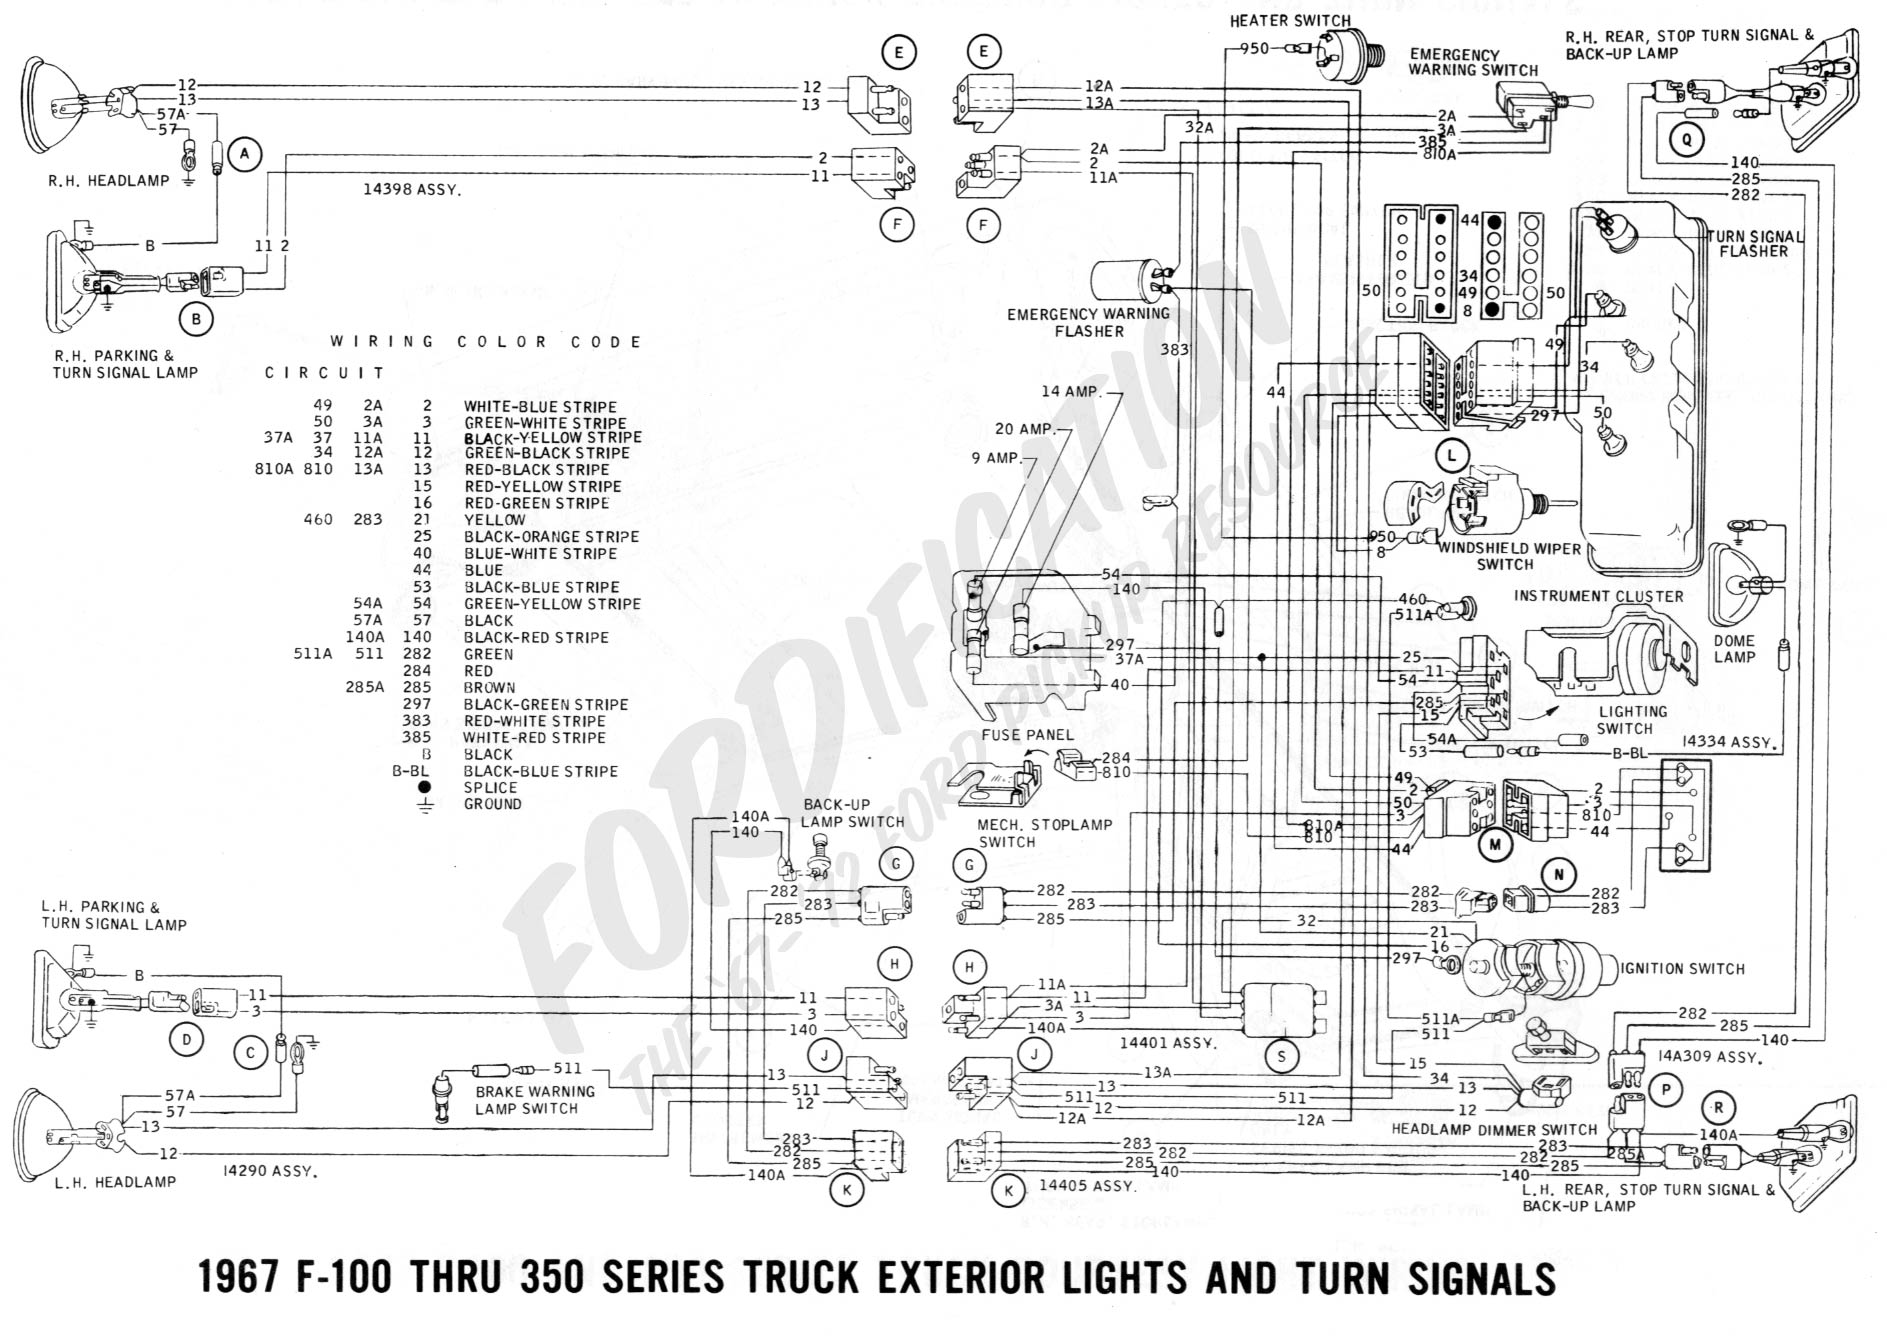 1994 Taurus Starter Connection Diagram Wire Data Schema Ford Wiring Truck Technical Drawings And Schematics Section H 12 Volt Switch